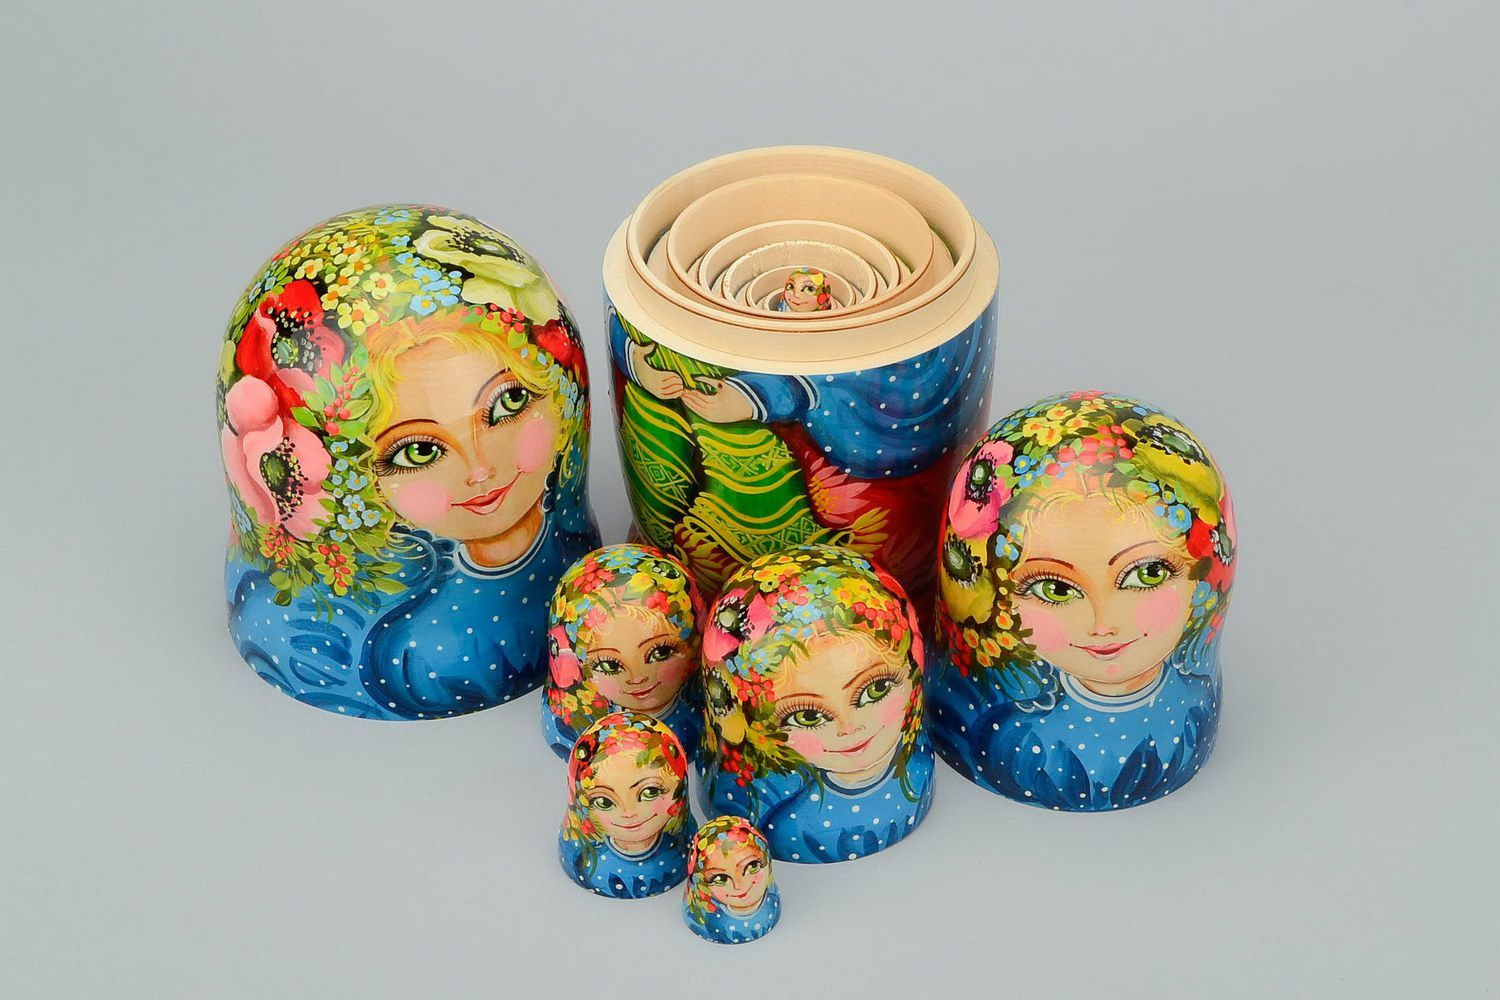 Wooden patterned matryoshka doll Poppy flower photo 5